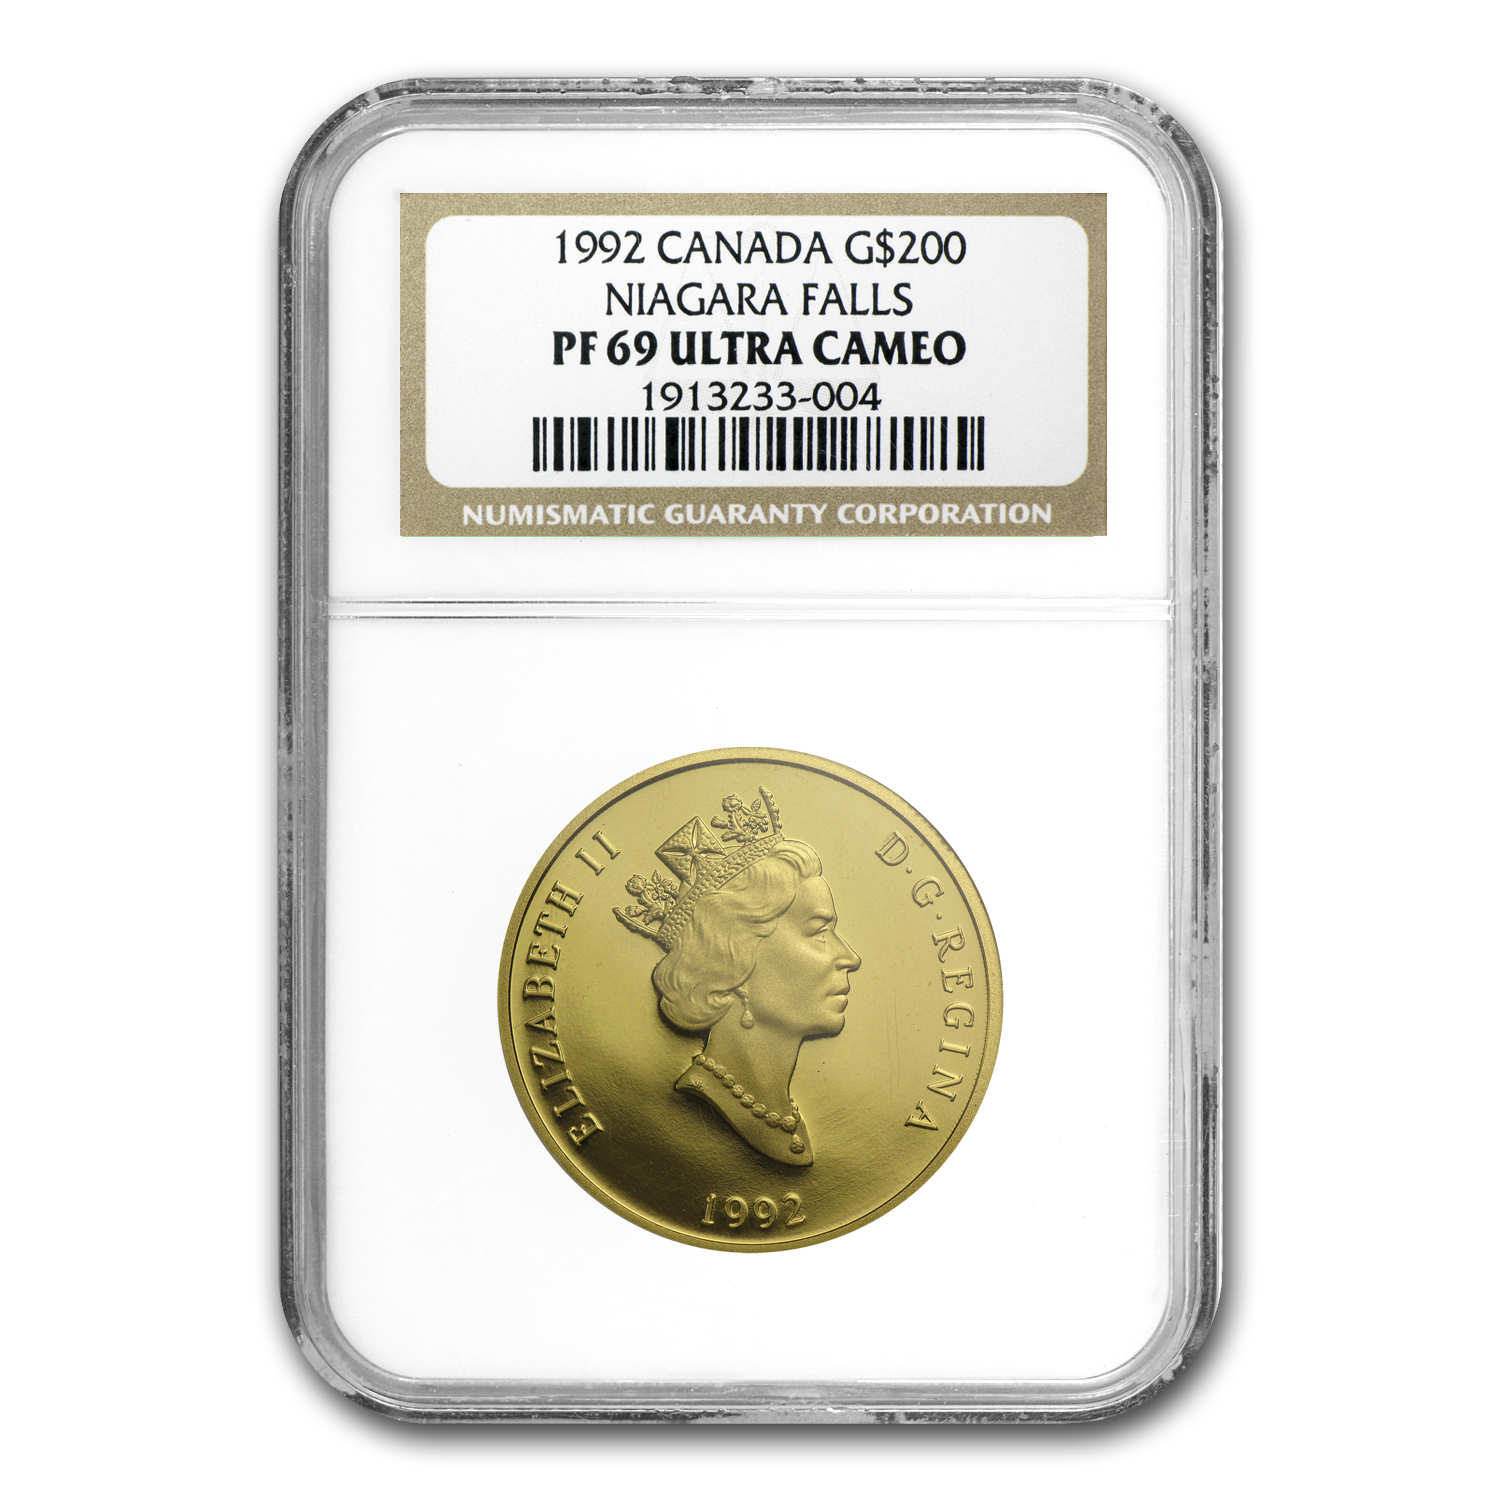 1992 1/2 oz Gold Canadian $200 Proof - Niagara Falls NGC PF-69